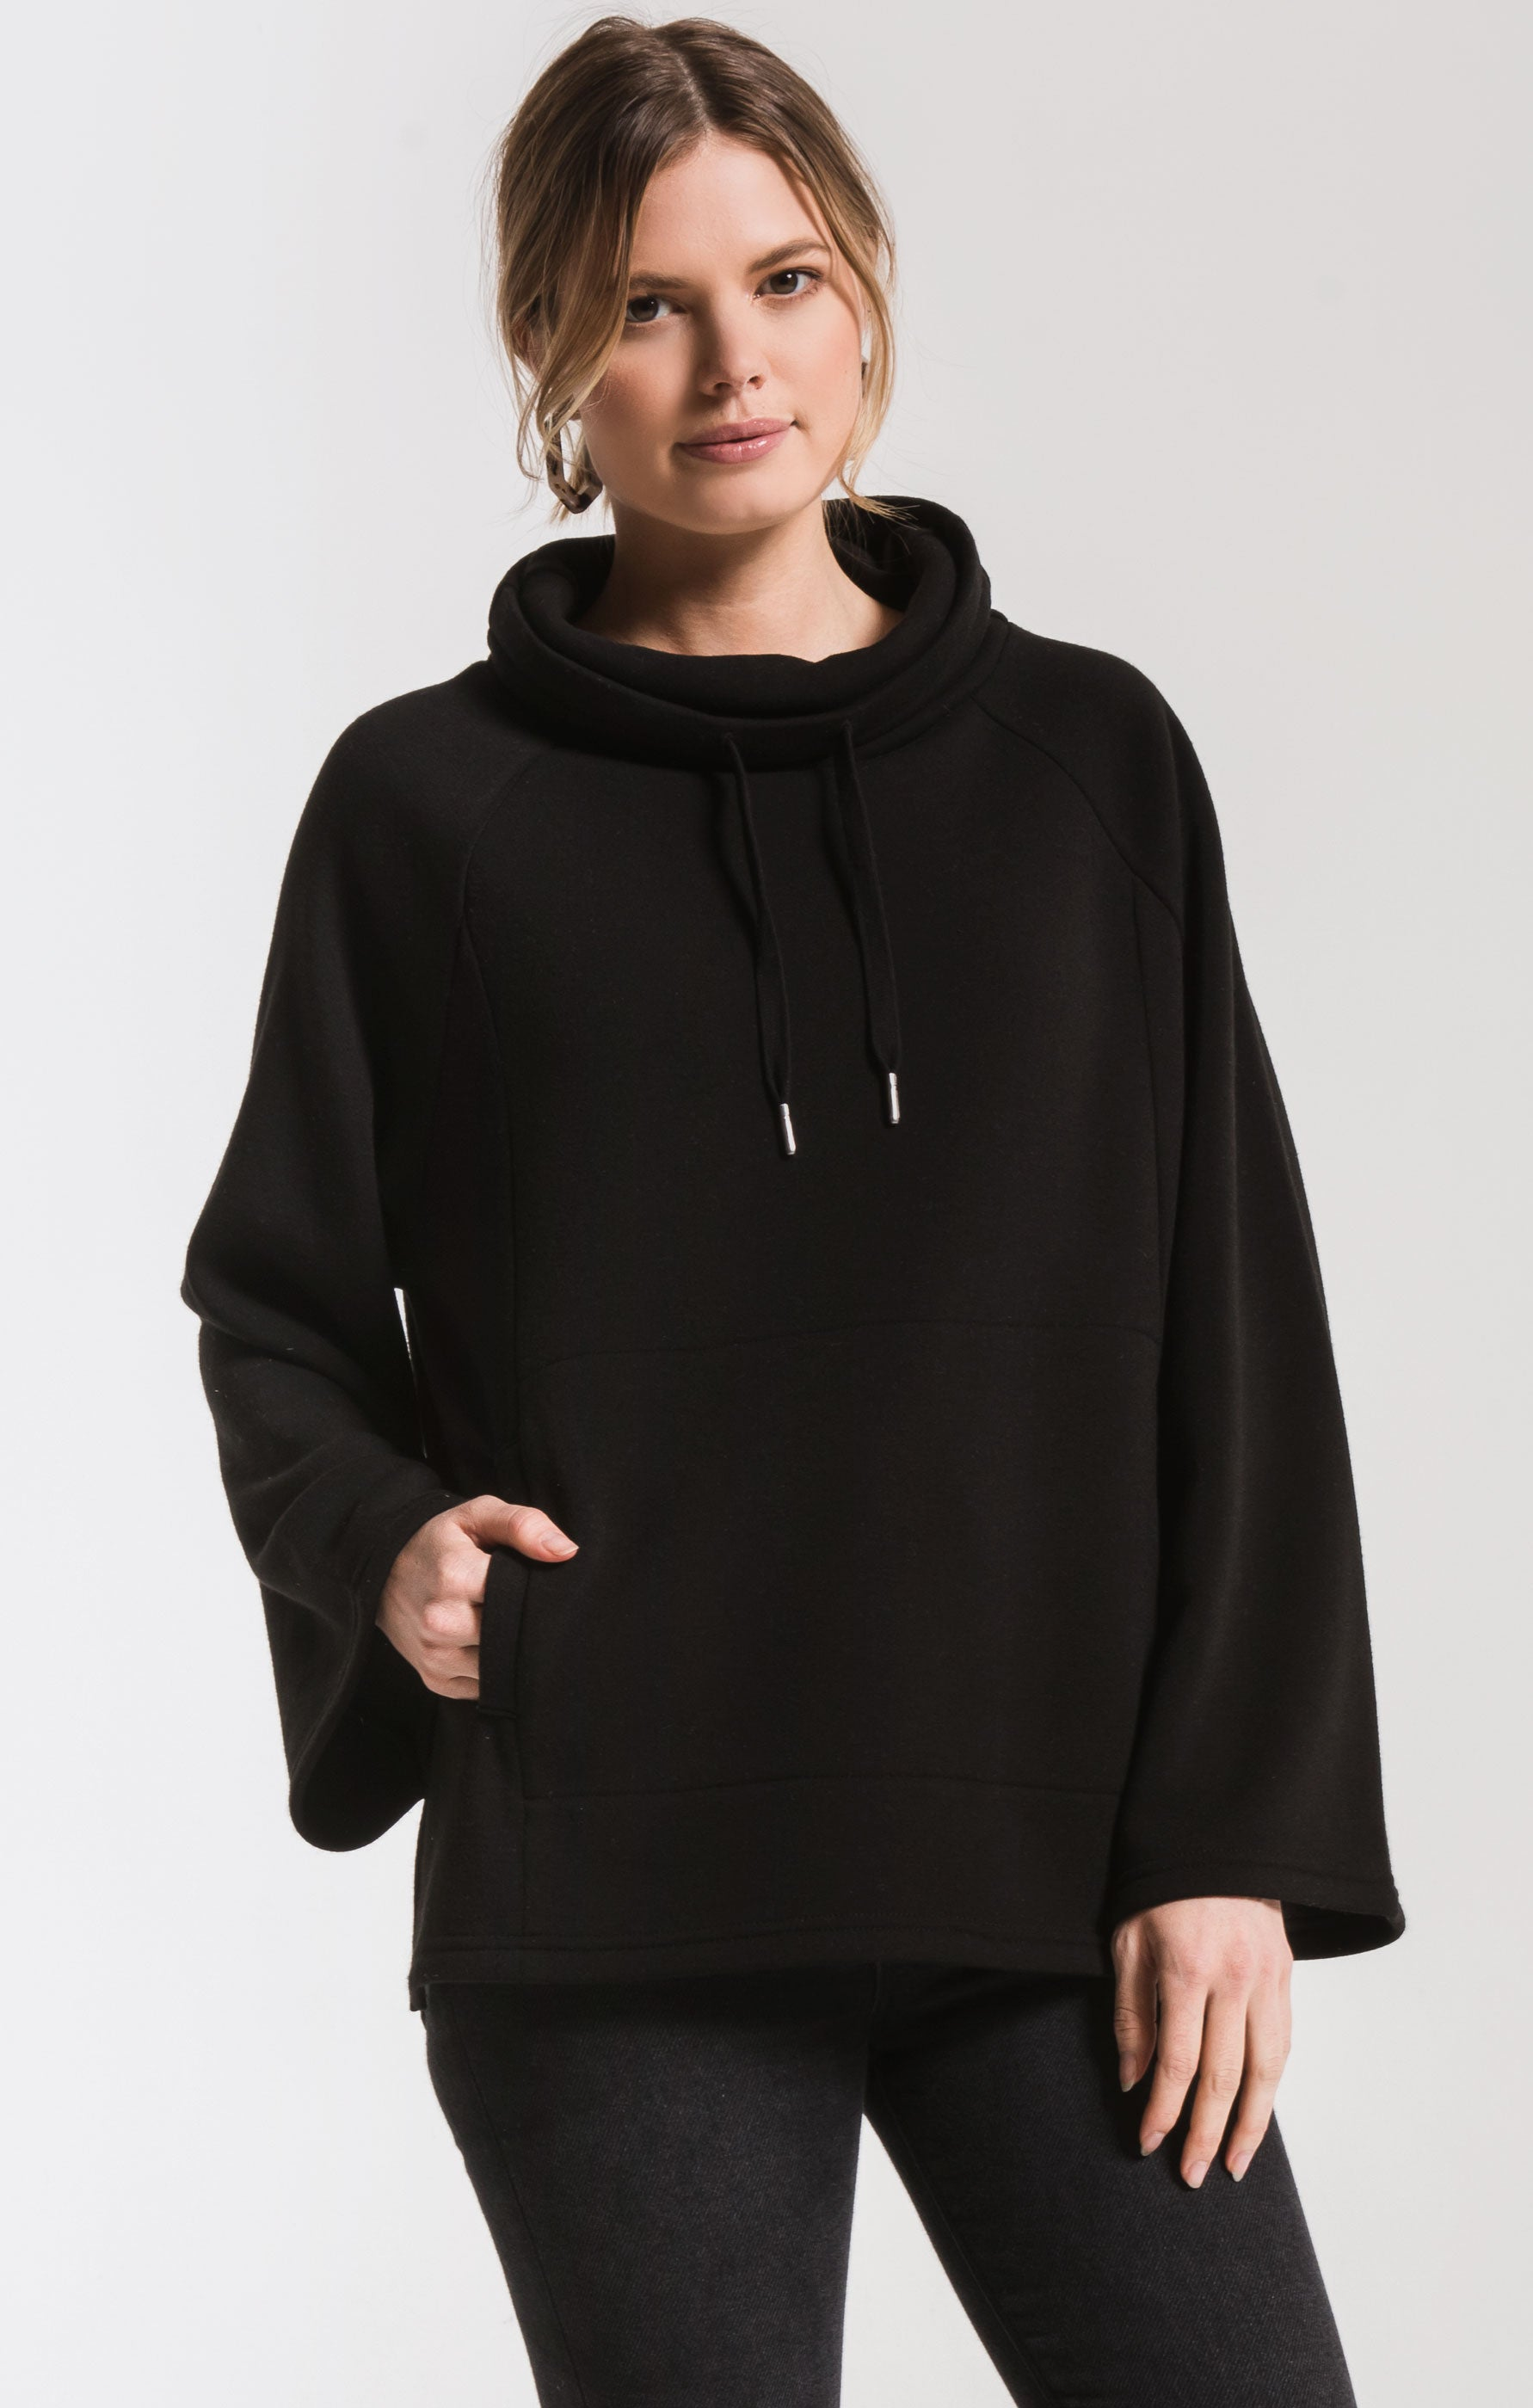 Jackets The Loft Fleece Cowl Neck Pullover Black